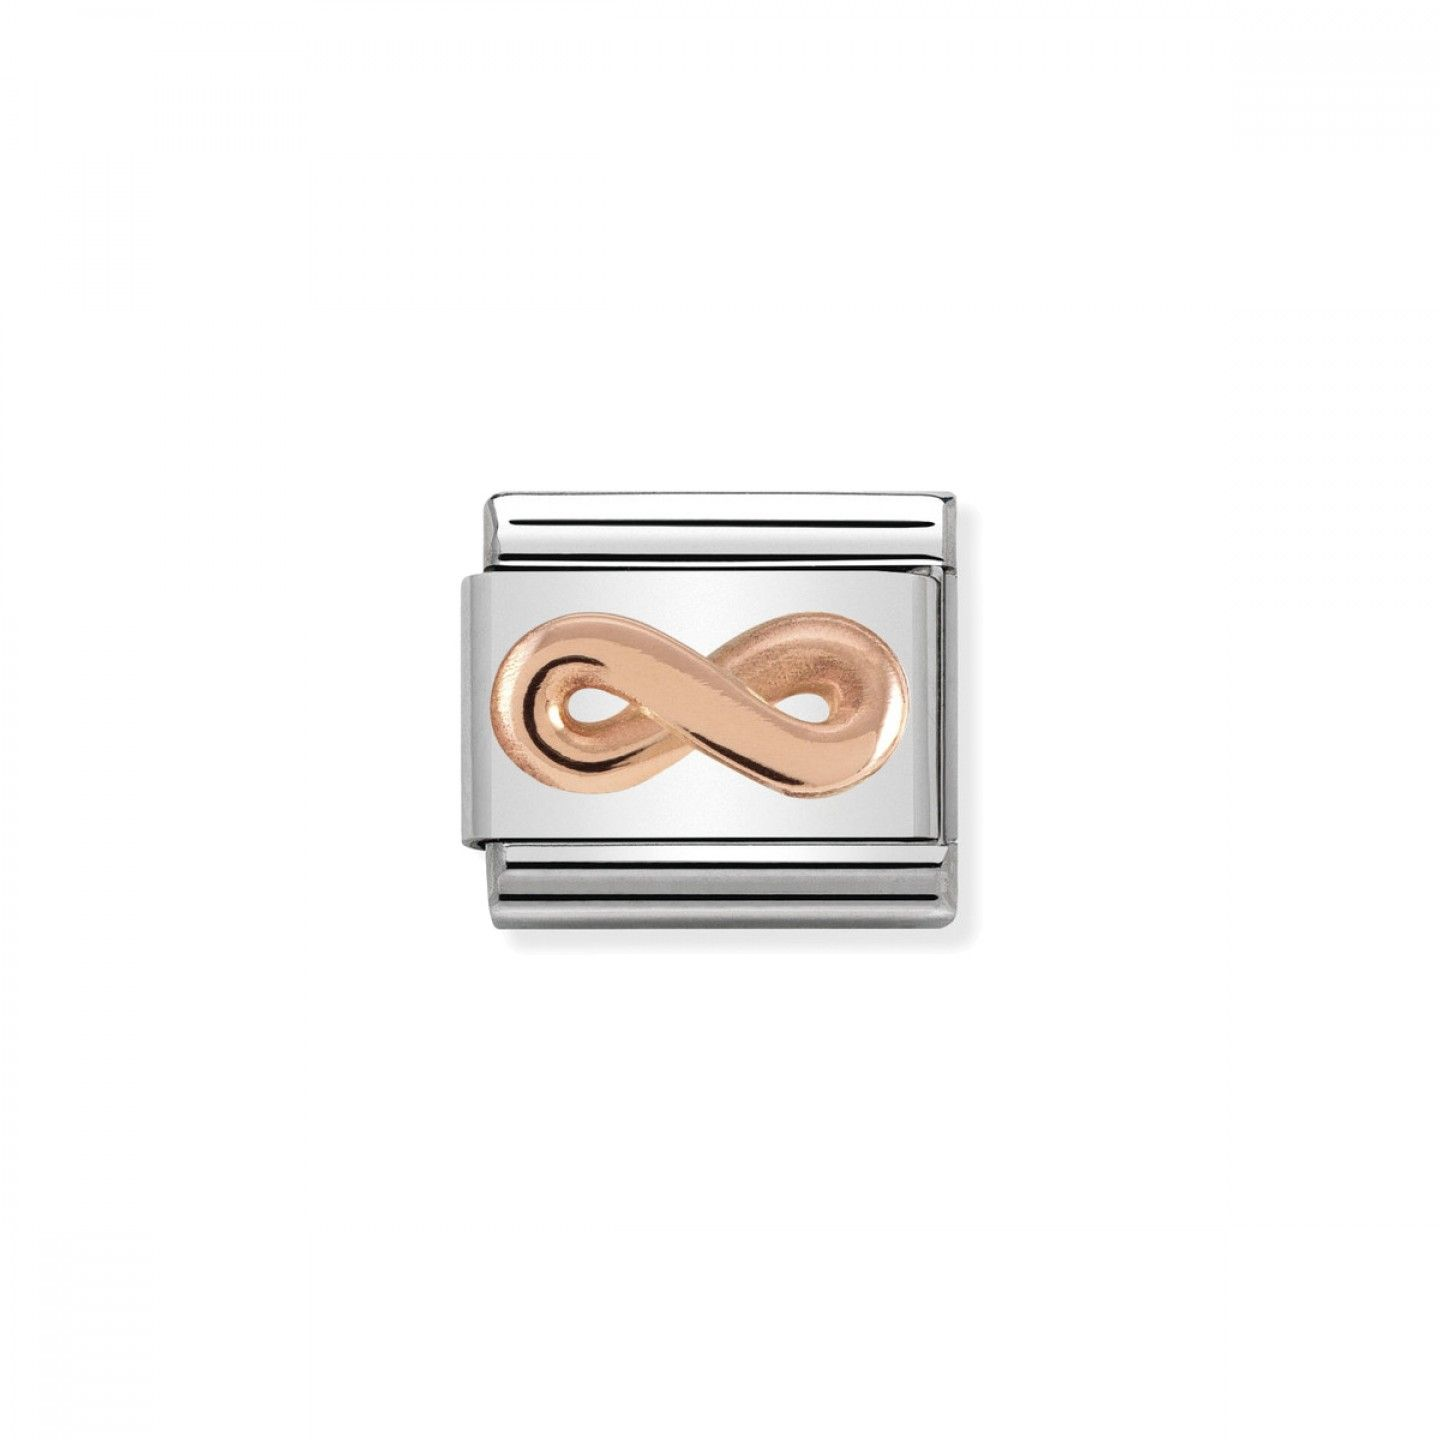 Charm Link NOMINATION, Ouro Rosa 9K, Infinito